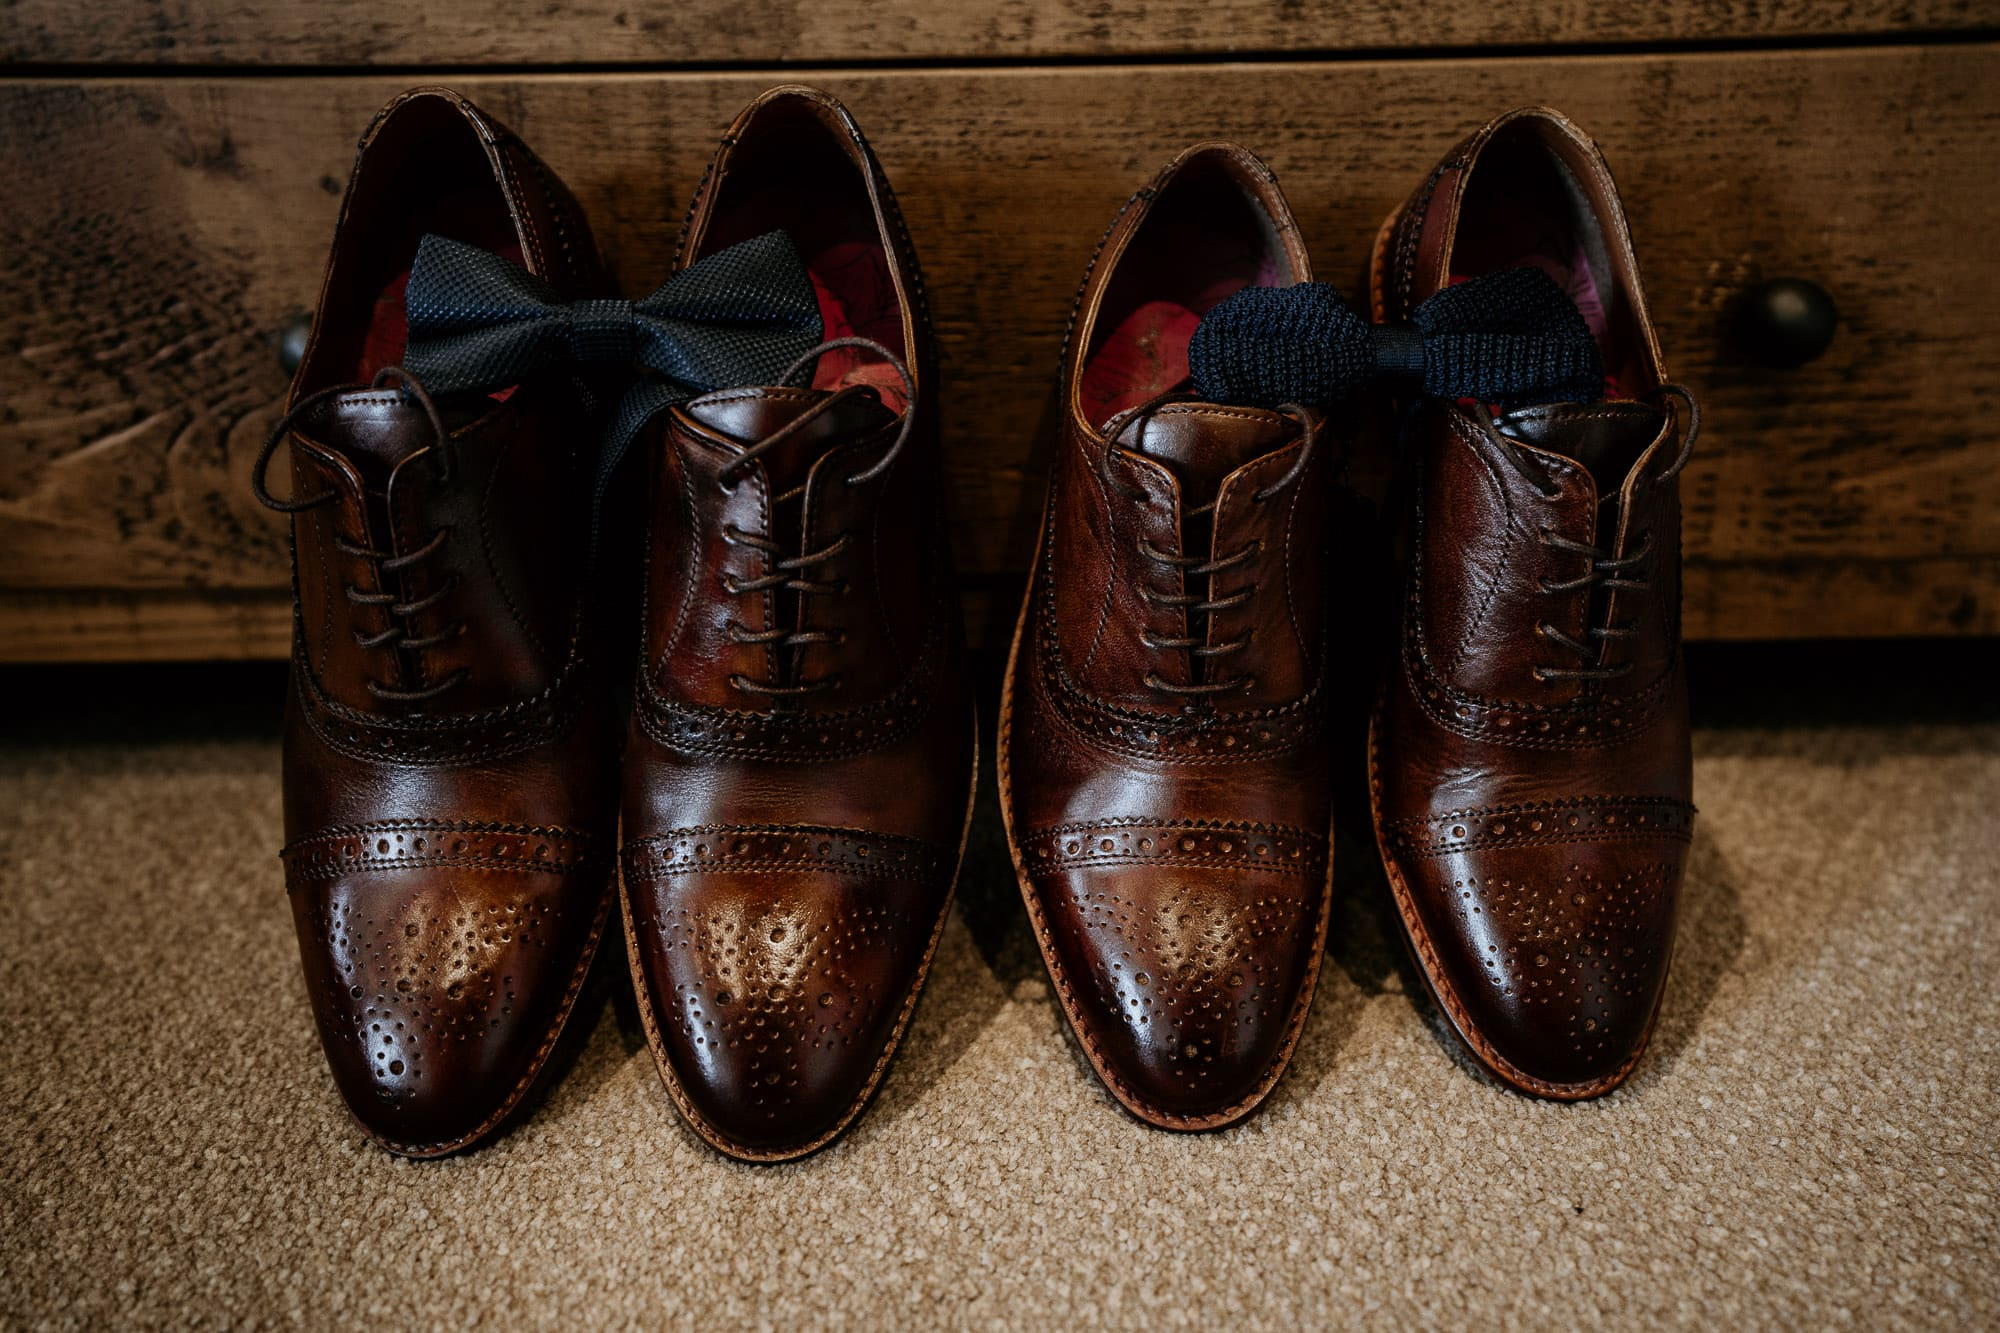 weding shoes on morning of a wedding